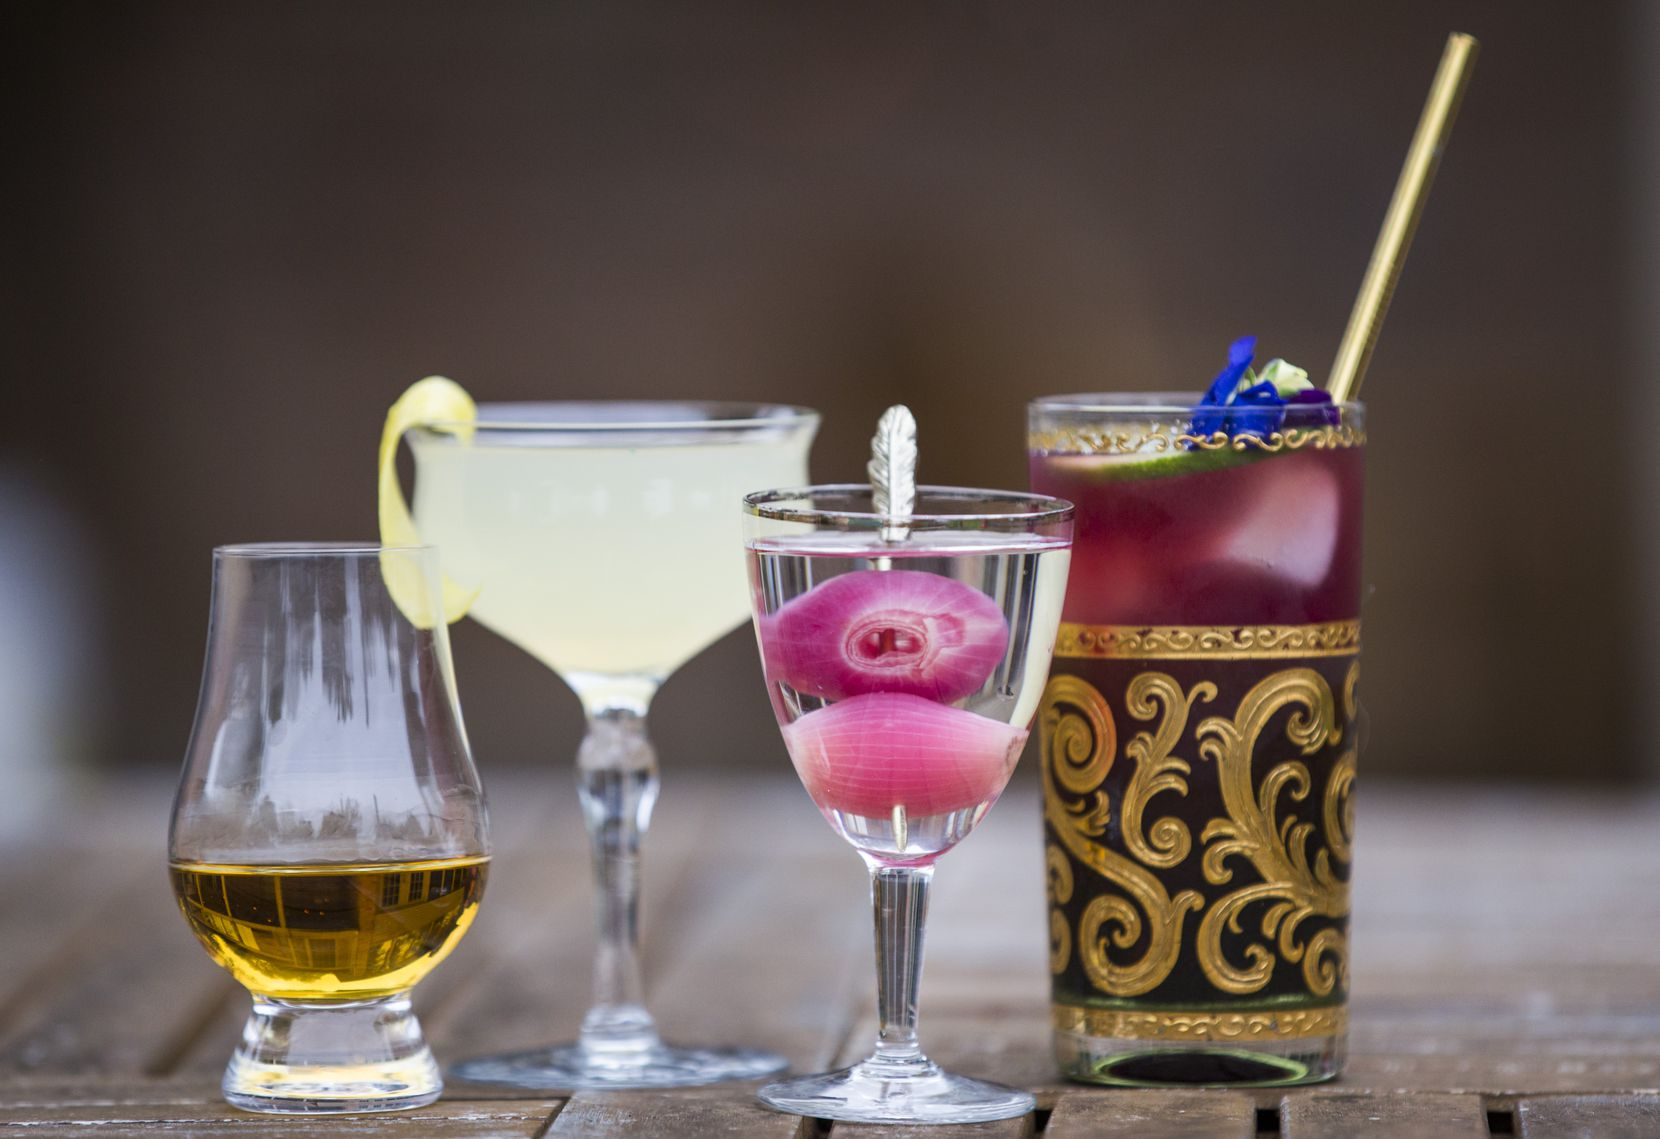 """Among the drinks Jones and Rivera have featured in their """"LesBnb"""" series: A pour of whiskey, a French 75, a Gibson martini and a Thrice and Elder, photographed at their home on Friday, April 3, 2020 in Dallas. The couple is among a number of spirits industry workers making drink videos to stay busy, creative and connected to their tight-knit-community. (Ashley Landis/The Dallas Morning News)"""